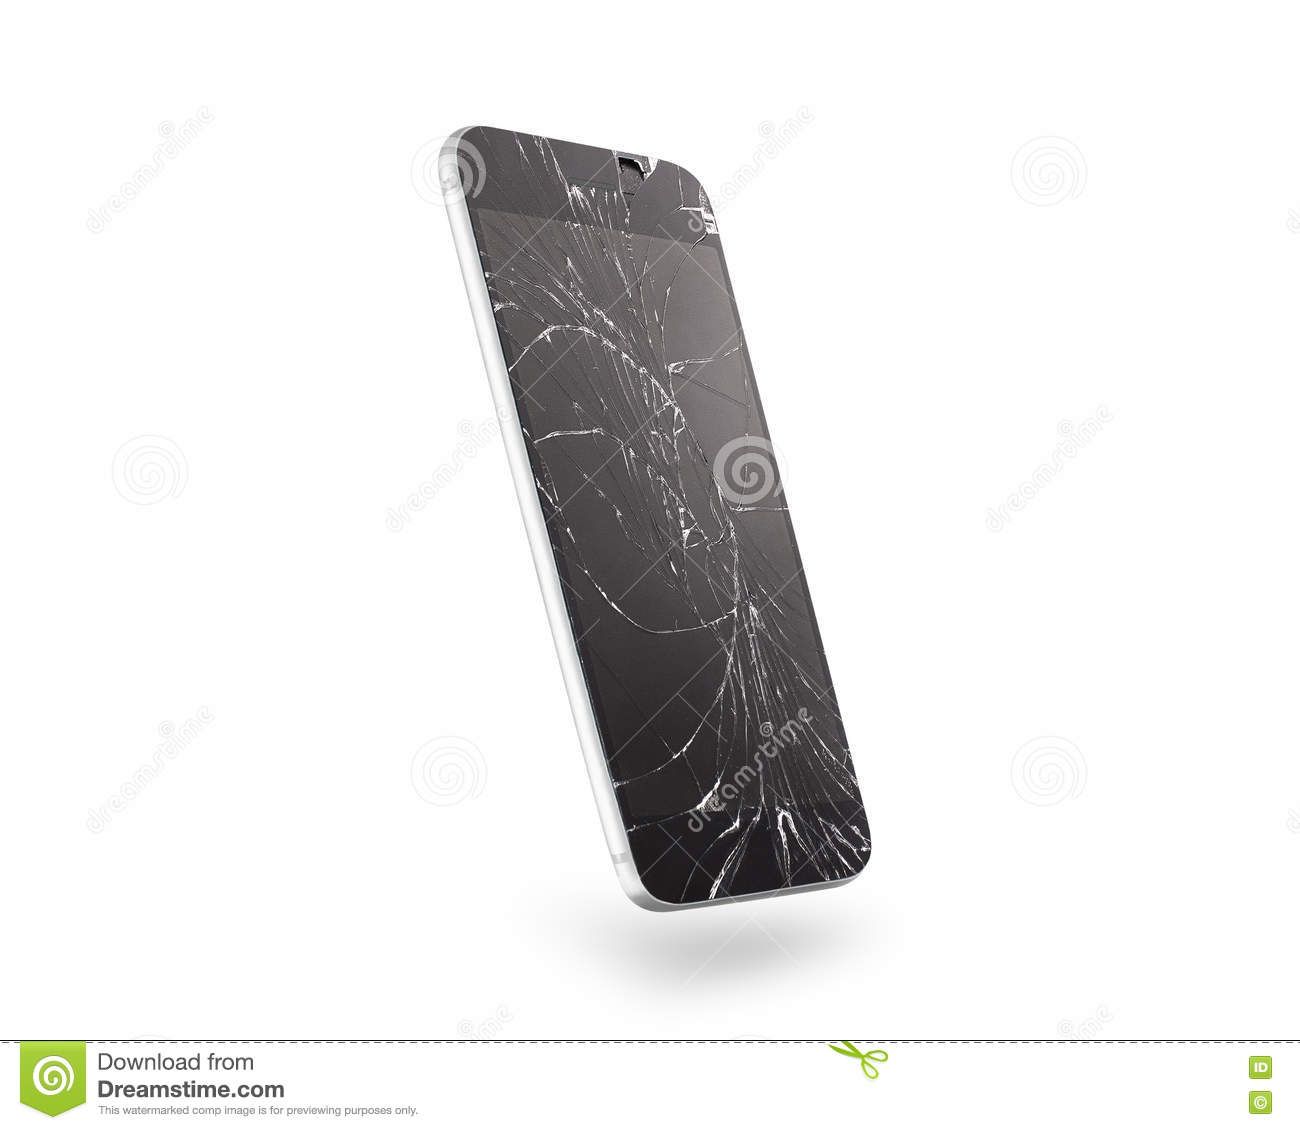 Broken mobile phone screen, side view, isolated, clipping path.